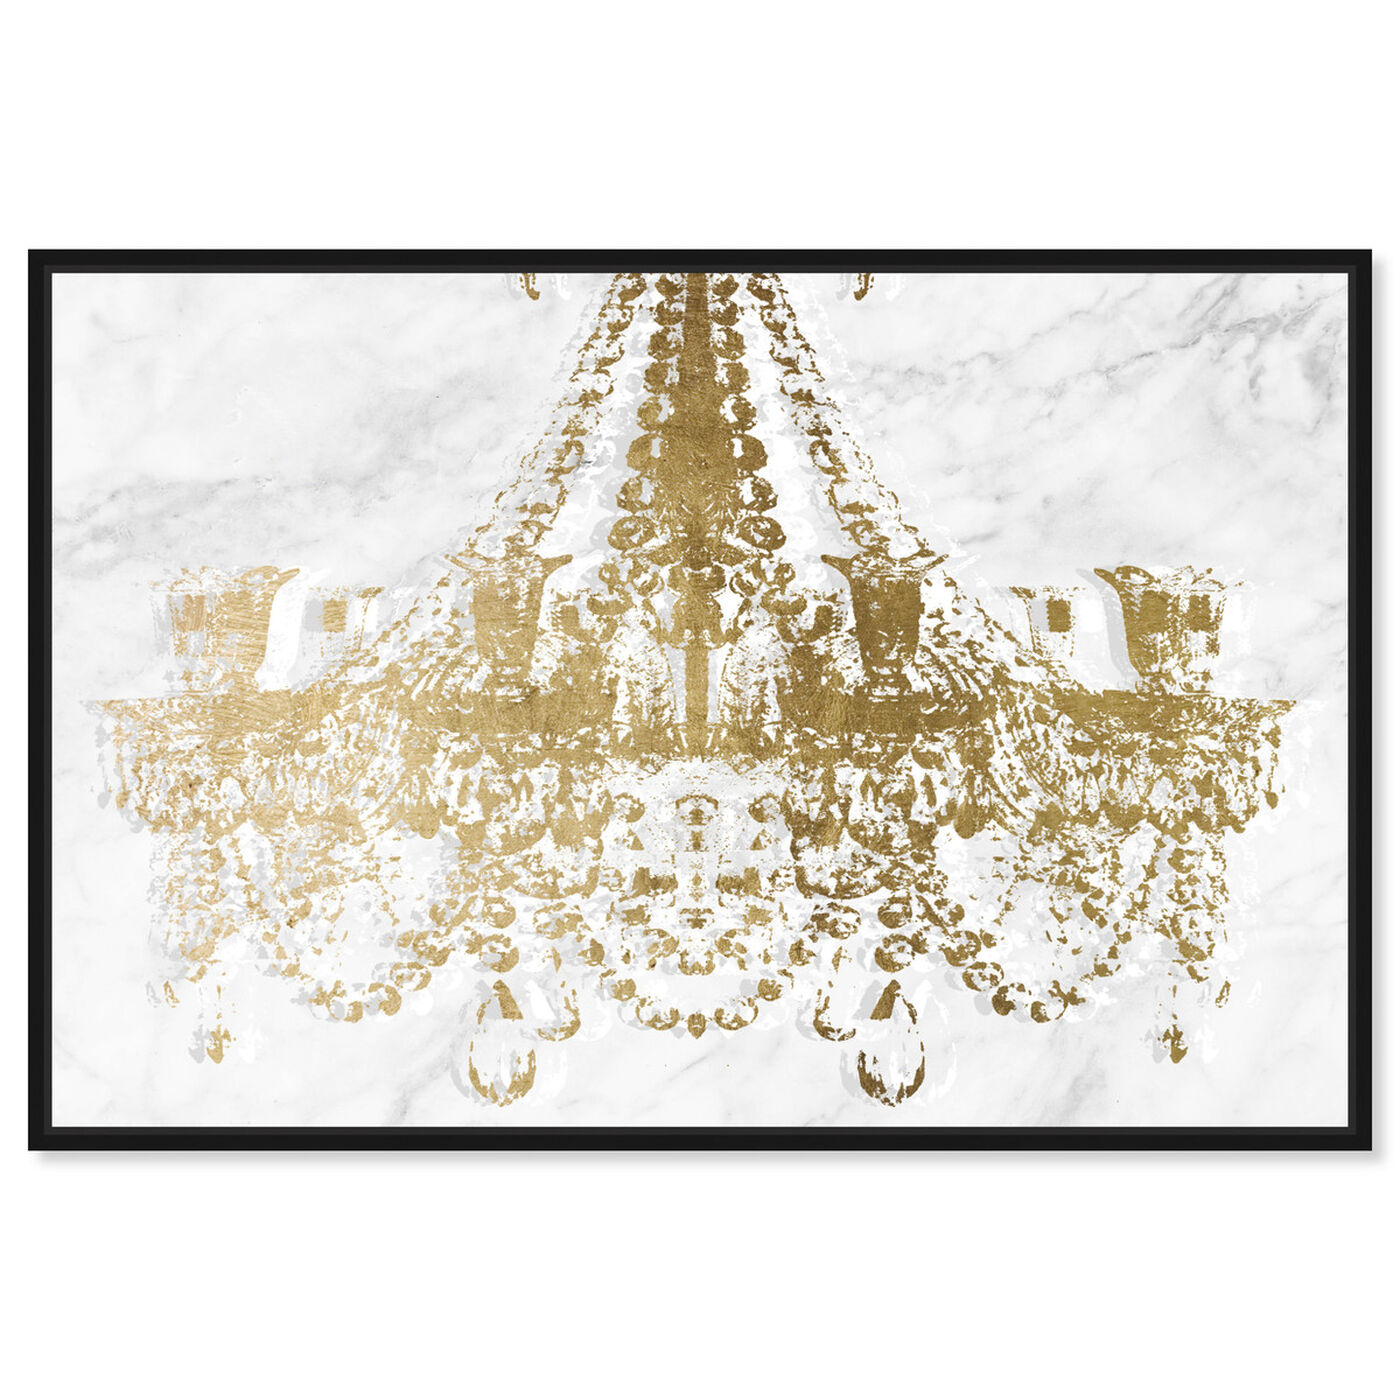 Front view of Dramatic Entrance Marble and Gold featuring fashion and glam and chandeliers art.